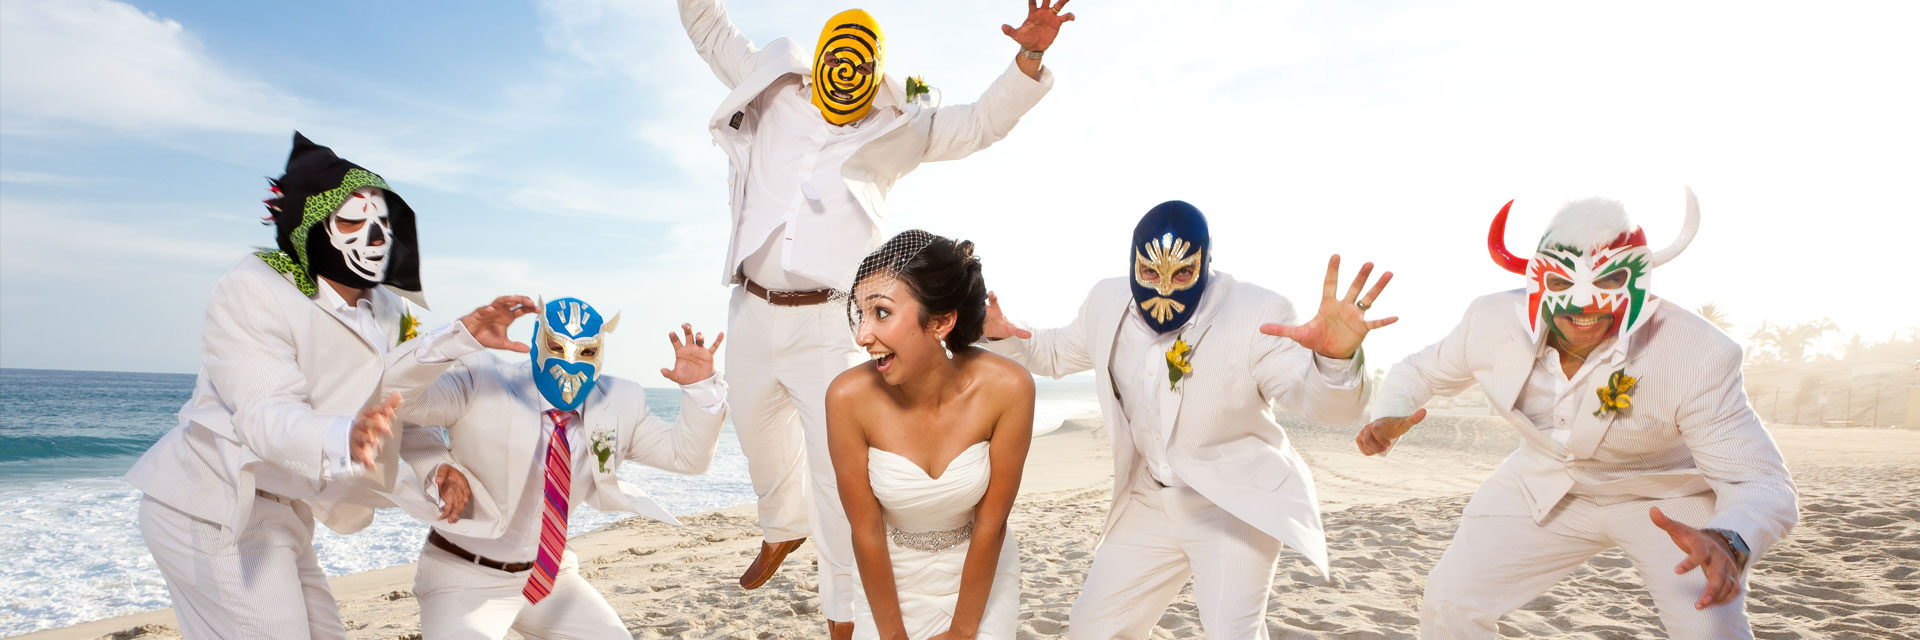 A startled bride looks shocked as the groomsmen jump around in mexican wrestling masks. Photography was taken by Dino Gomez